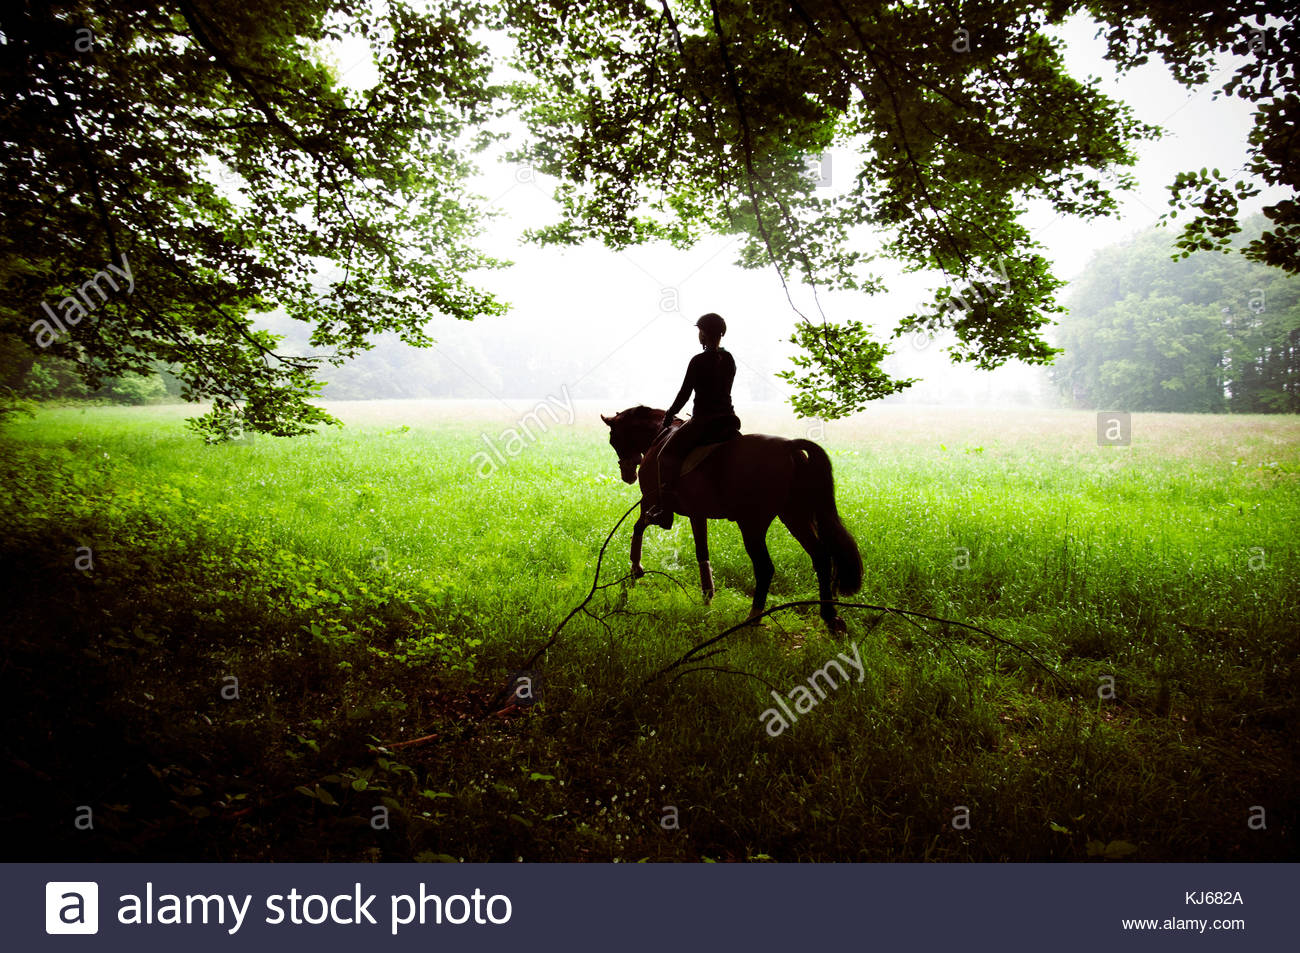 horse riding in the forest - Stock Image